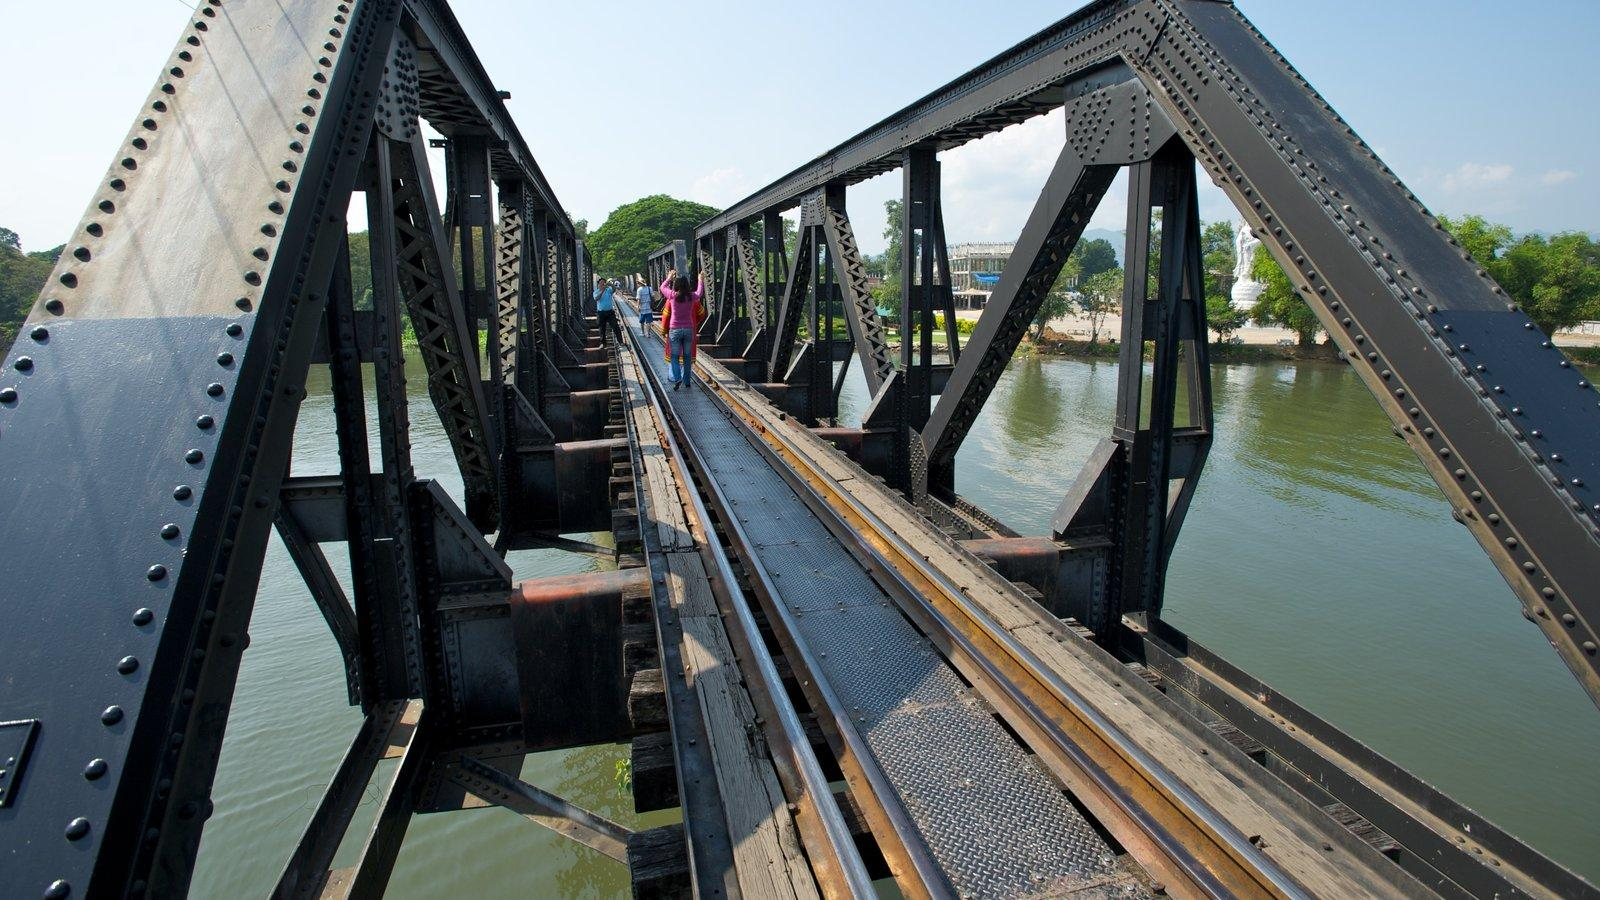 Bridge Over the River Kwai pictures: View photos and images of ...